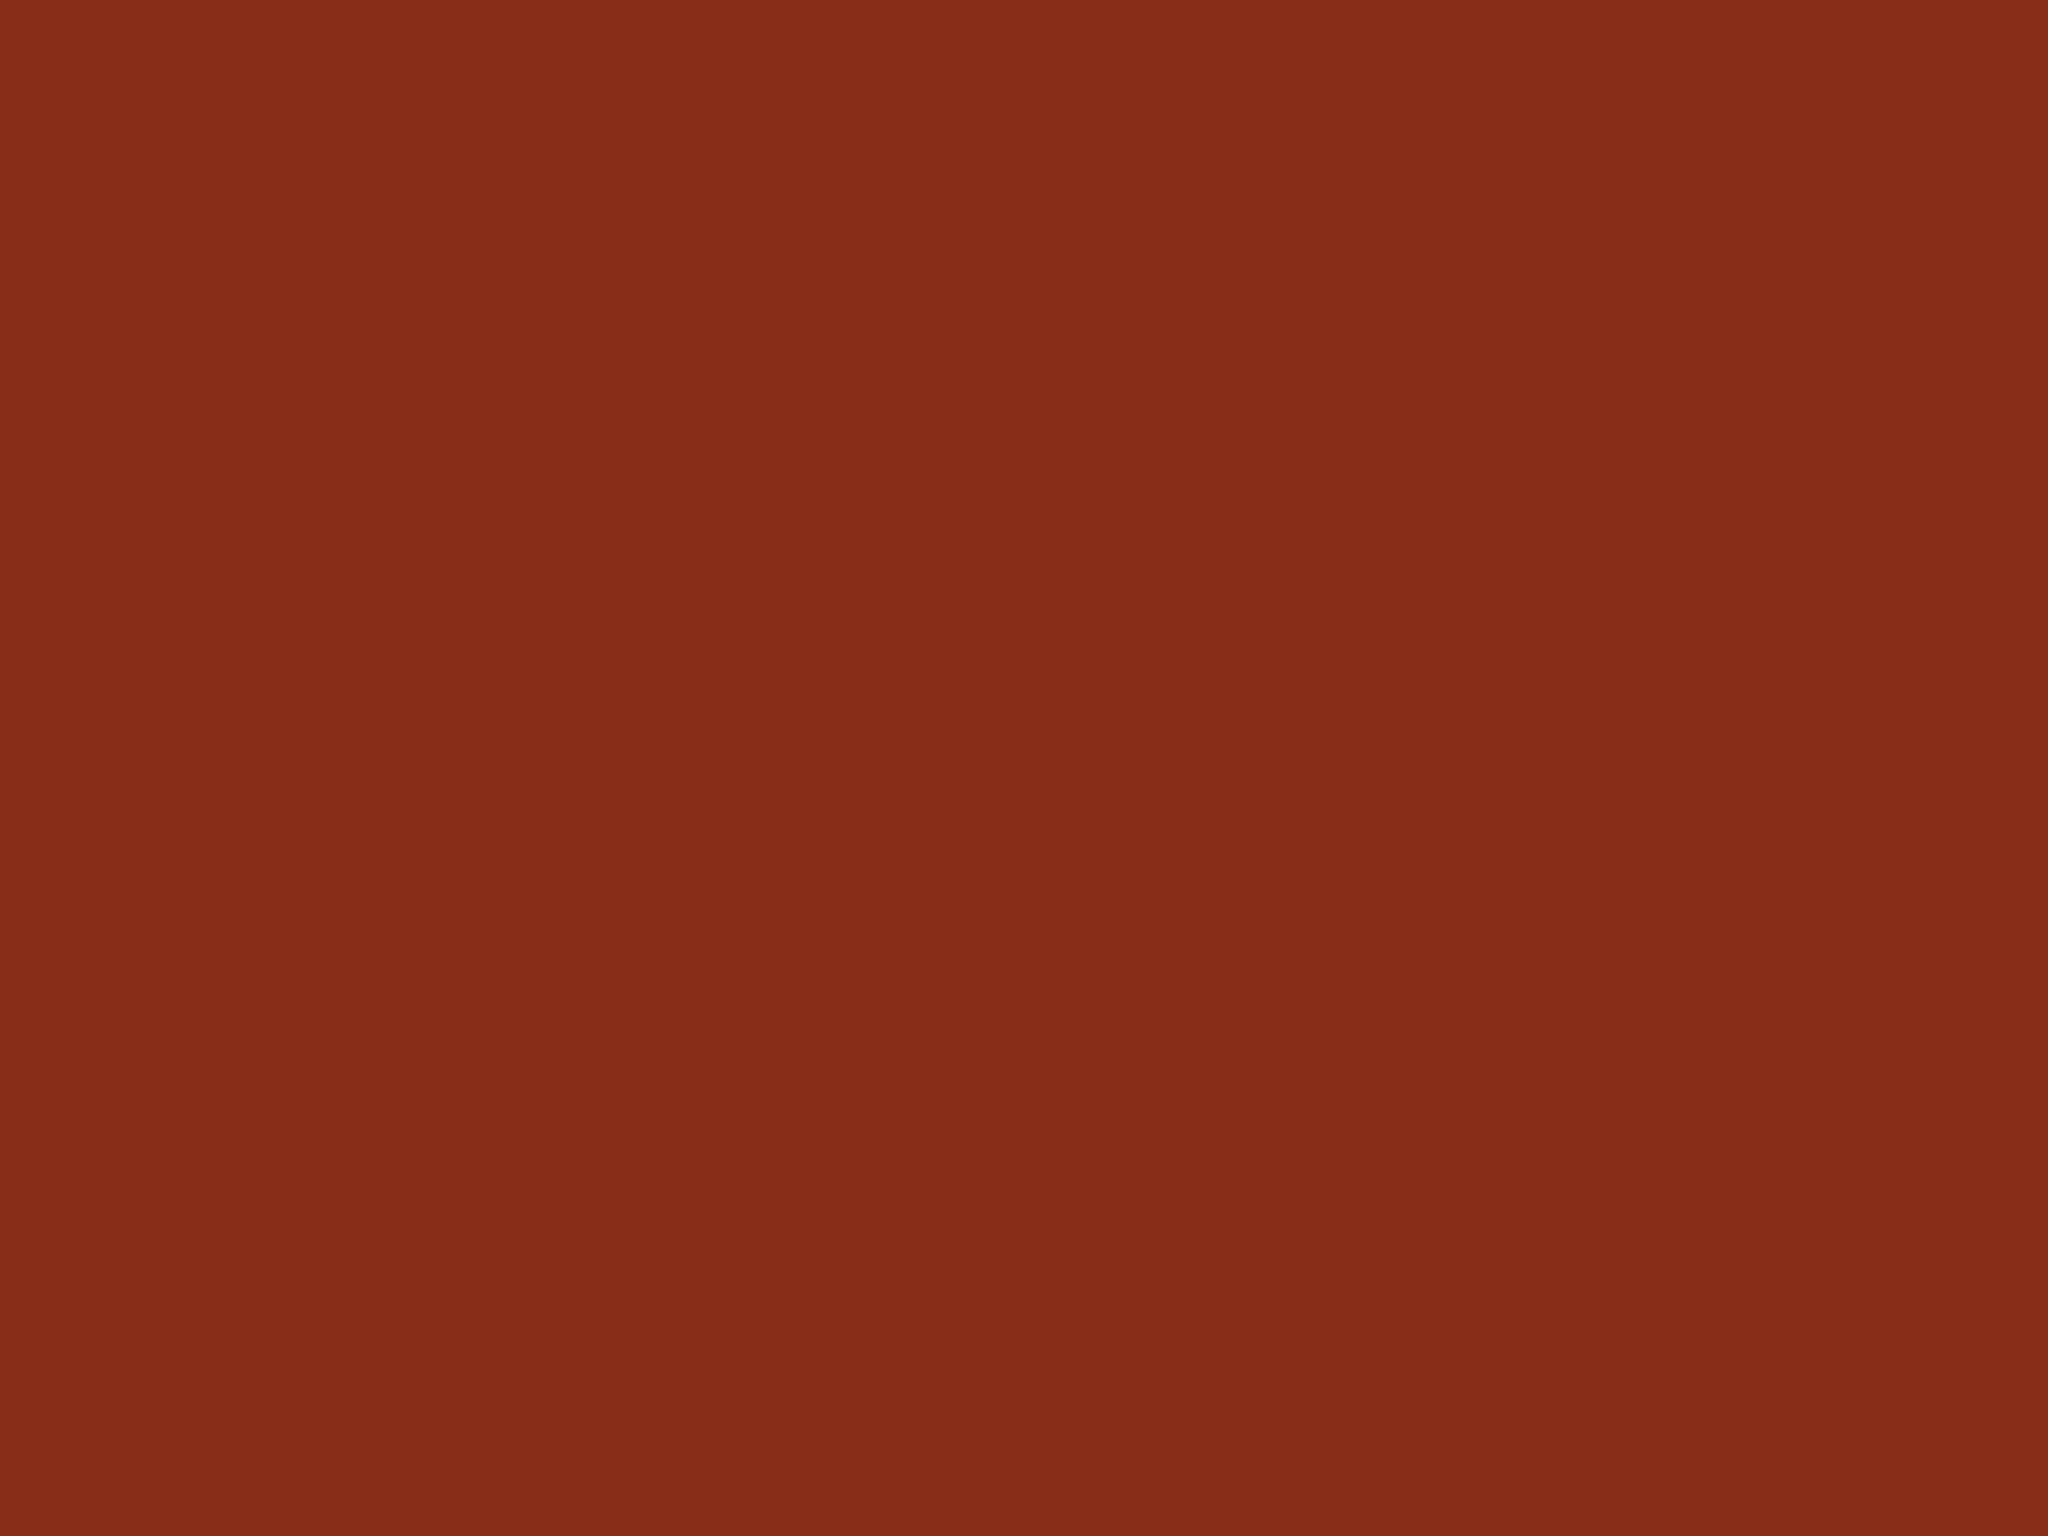 2048x1536 Sienna Solid Color Background